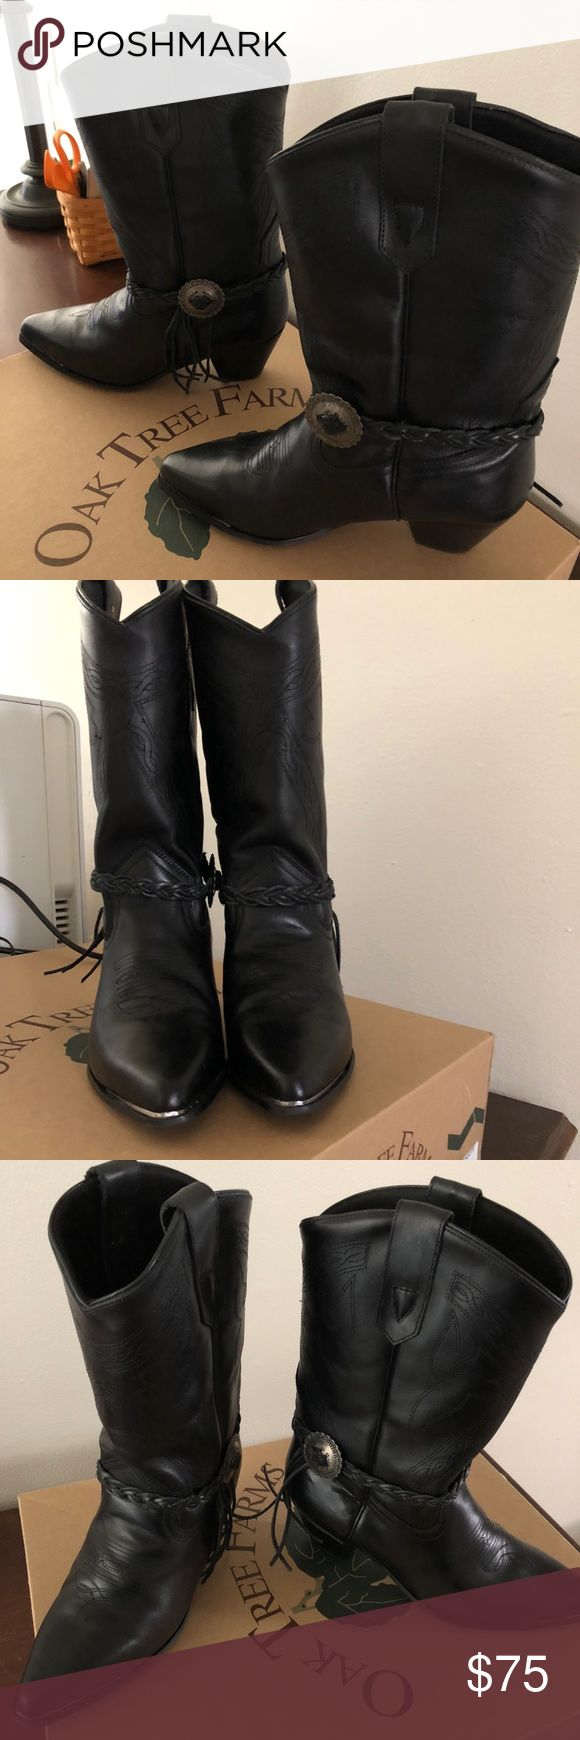 Oak Tree Farms EUC Leather Mesquite Cowgirl Boots EUC Mesquite Style Black Oak Tree Farms Crafted and Fashionable durable Leather Cowgirl boots - Size 8. 12 inches high, 2 inch heel, only wore once.  Lovely stitched details, braided straps, silver tone hardware, and steel toes. oak tree farms Shoes Heeled Boots